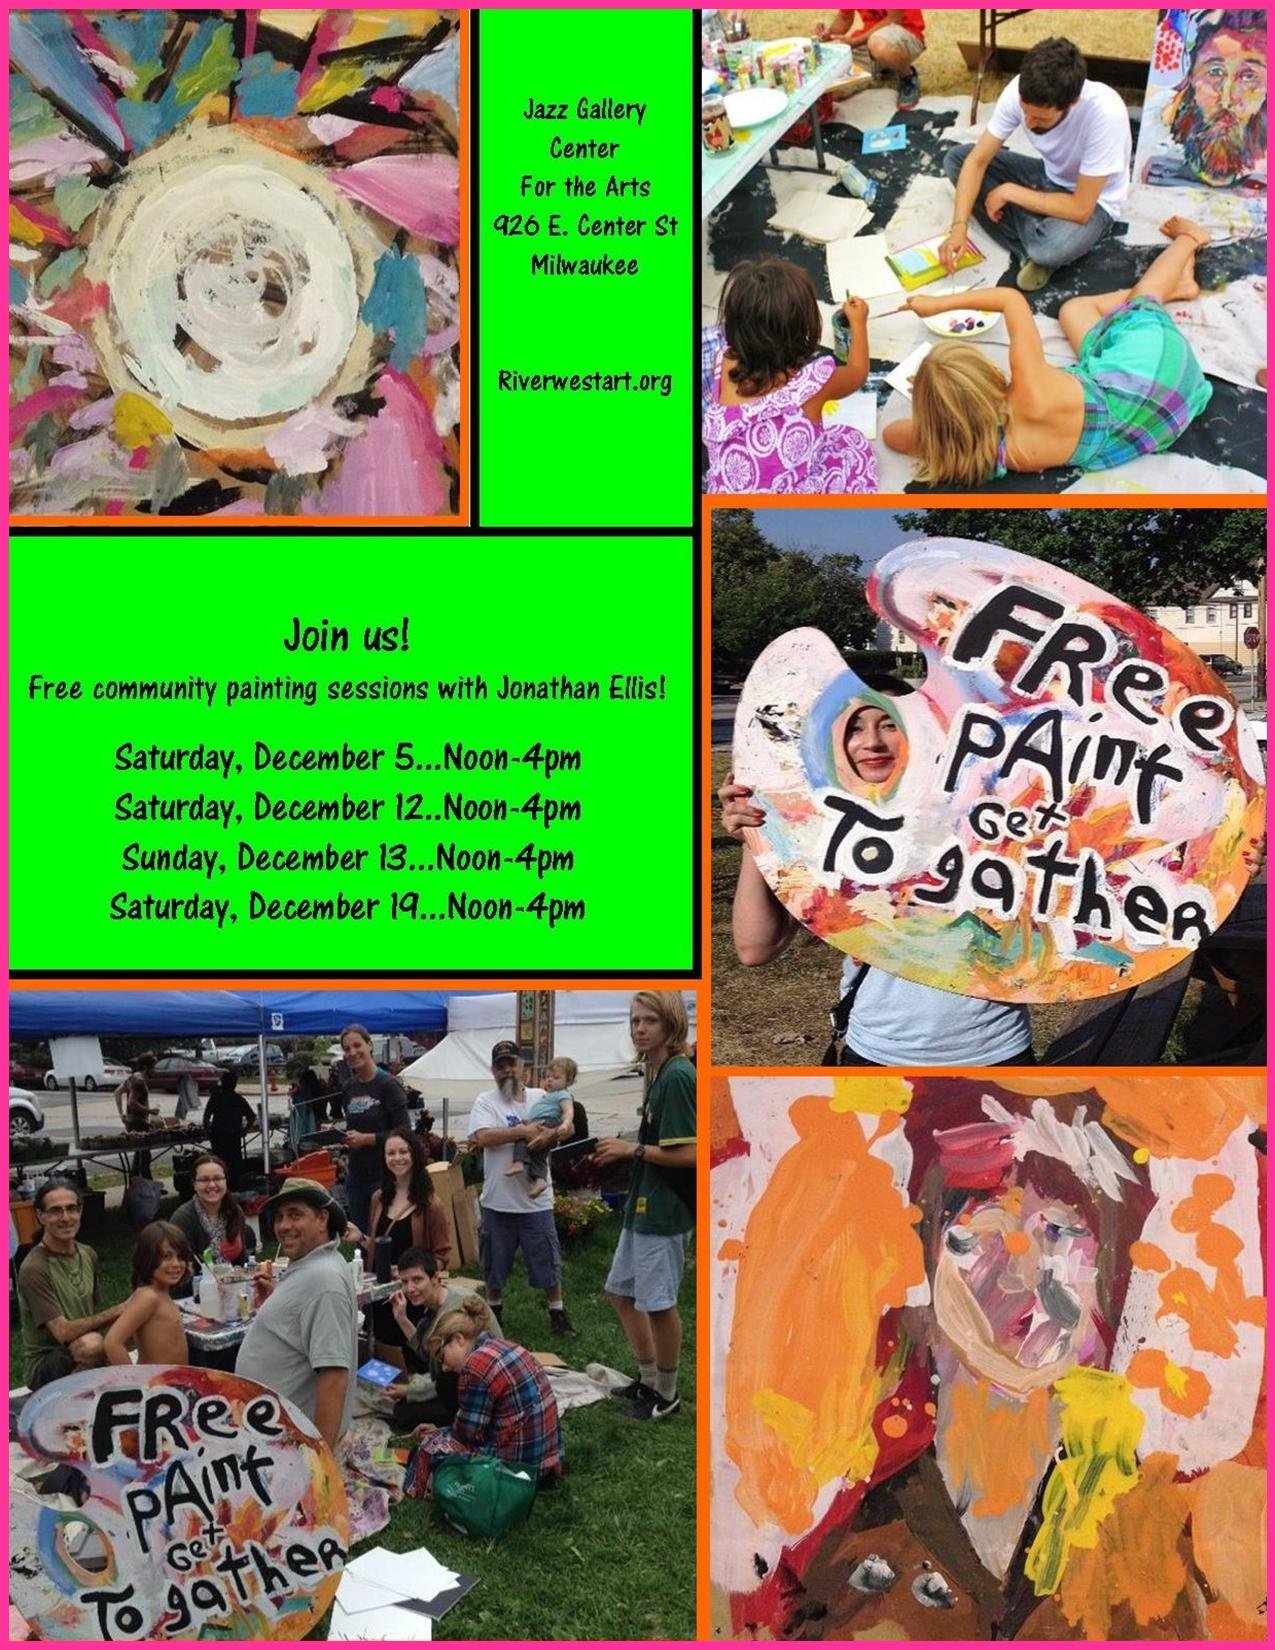 Riverwest Artists Association Hosts Free Paint Get Togather Exhibit & Community Painting Events